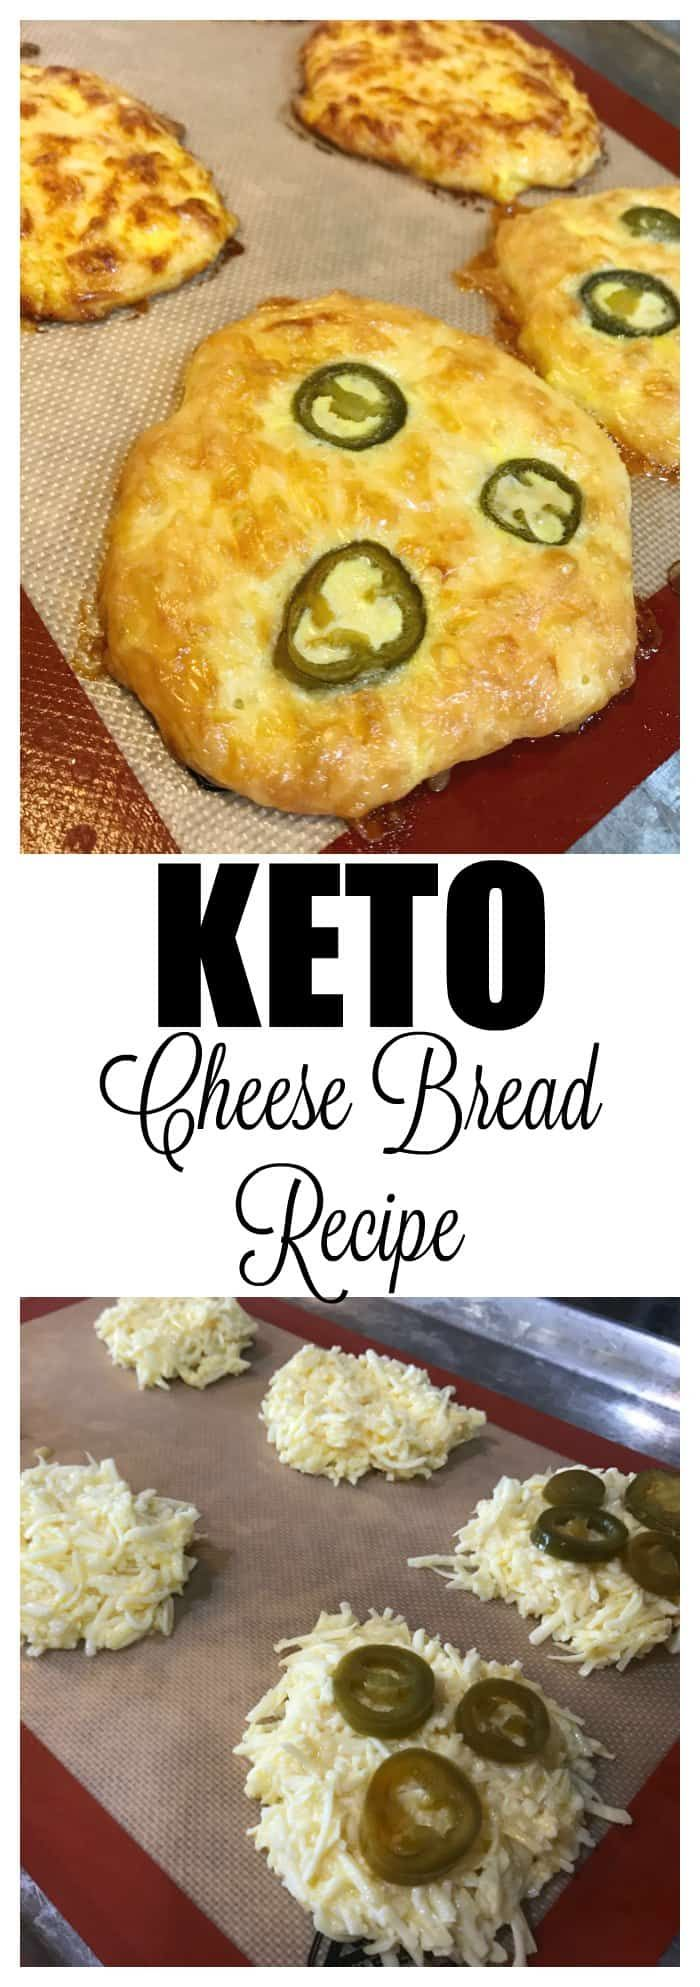 MOUTHWATERING Keto Jalapeno Cheese Bread Recipe. A jalapeno cheese bread recipe that is a keto chee